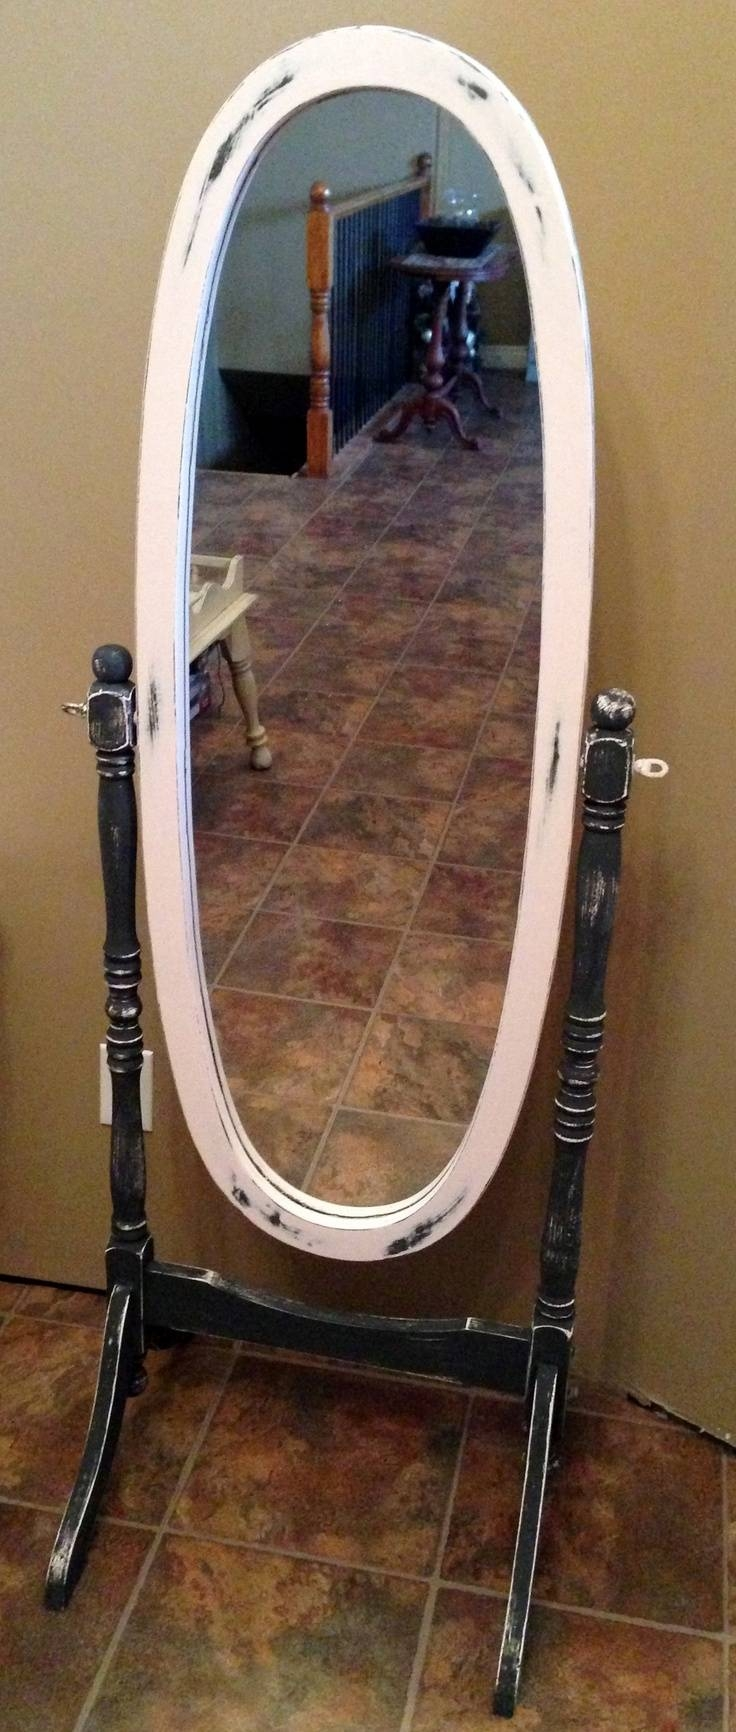 Best 25+ Redo Mirror Ideas On Pinterest | Bathroom Mirror Redo in Oval Freestanding Mirrors (Image 6 of 25)